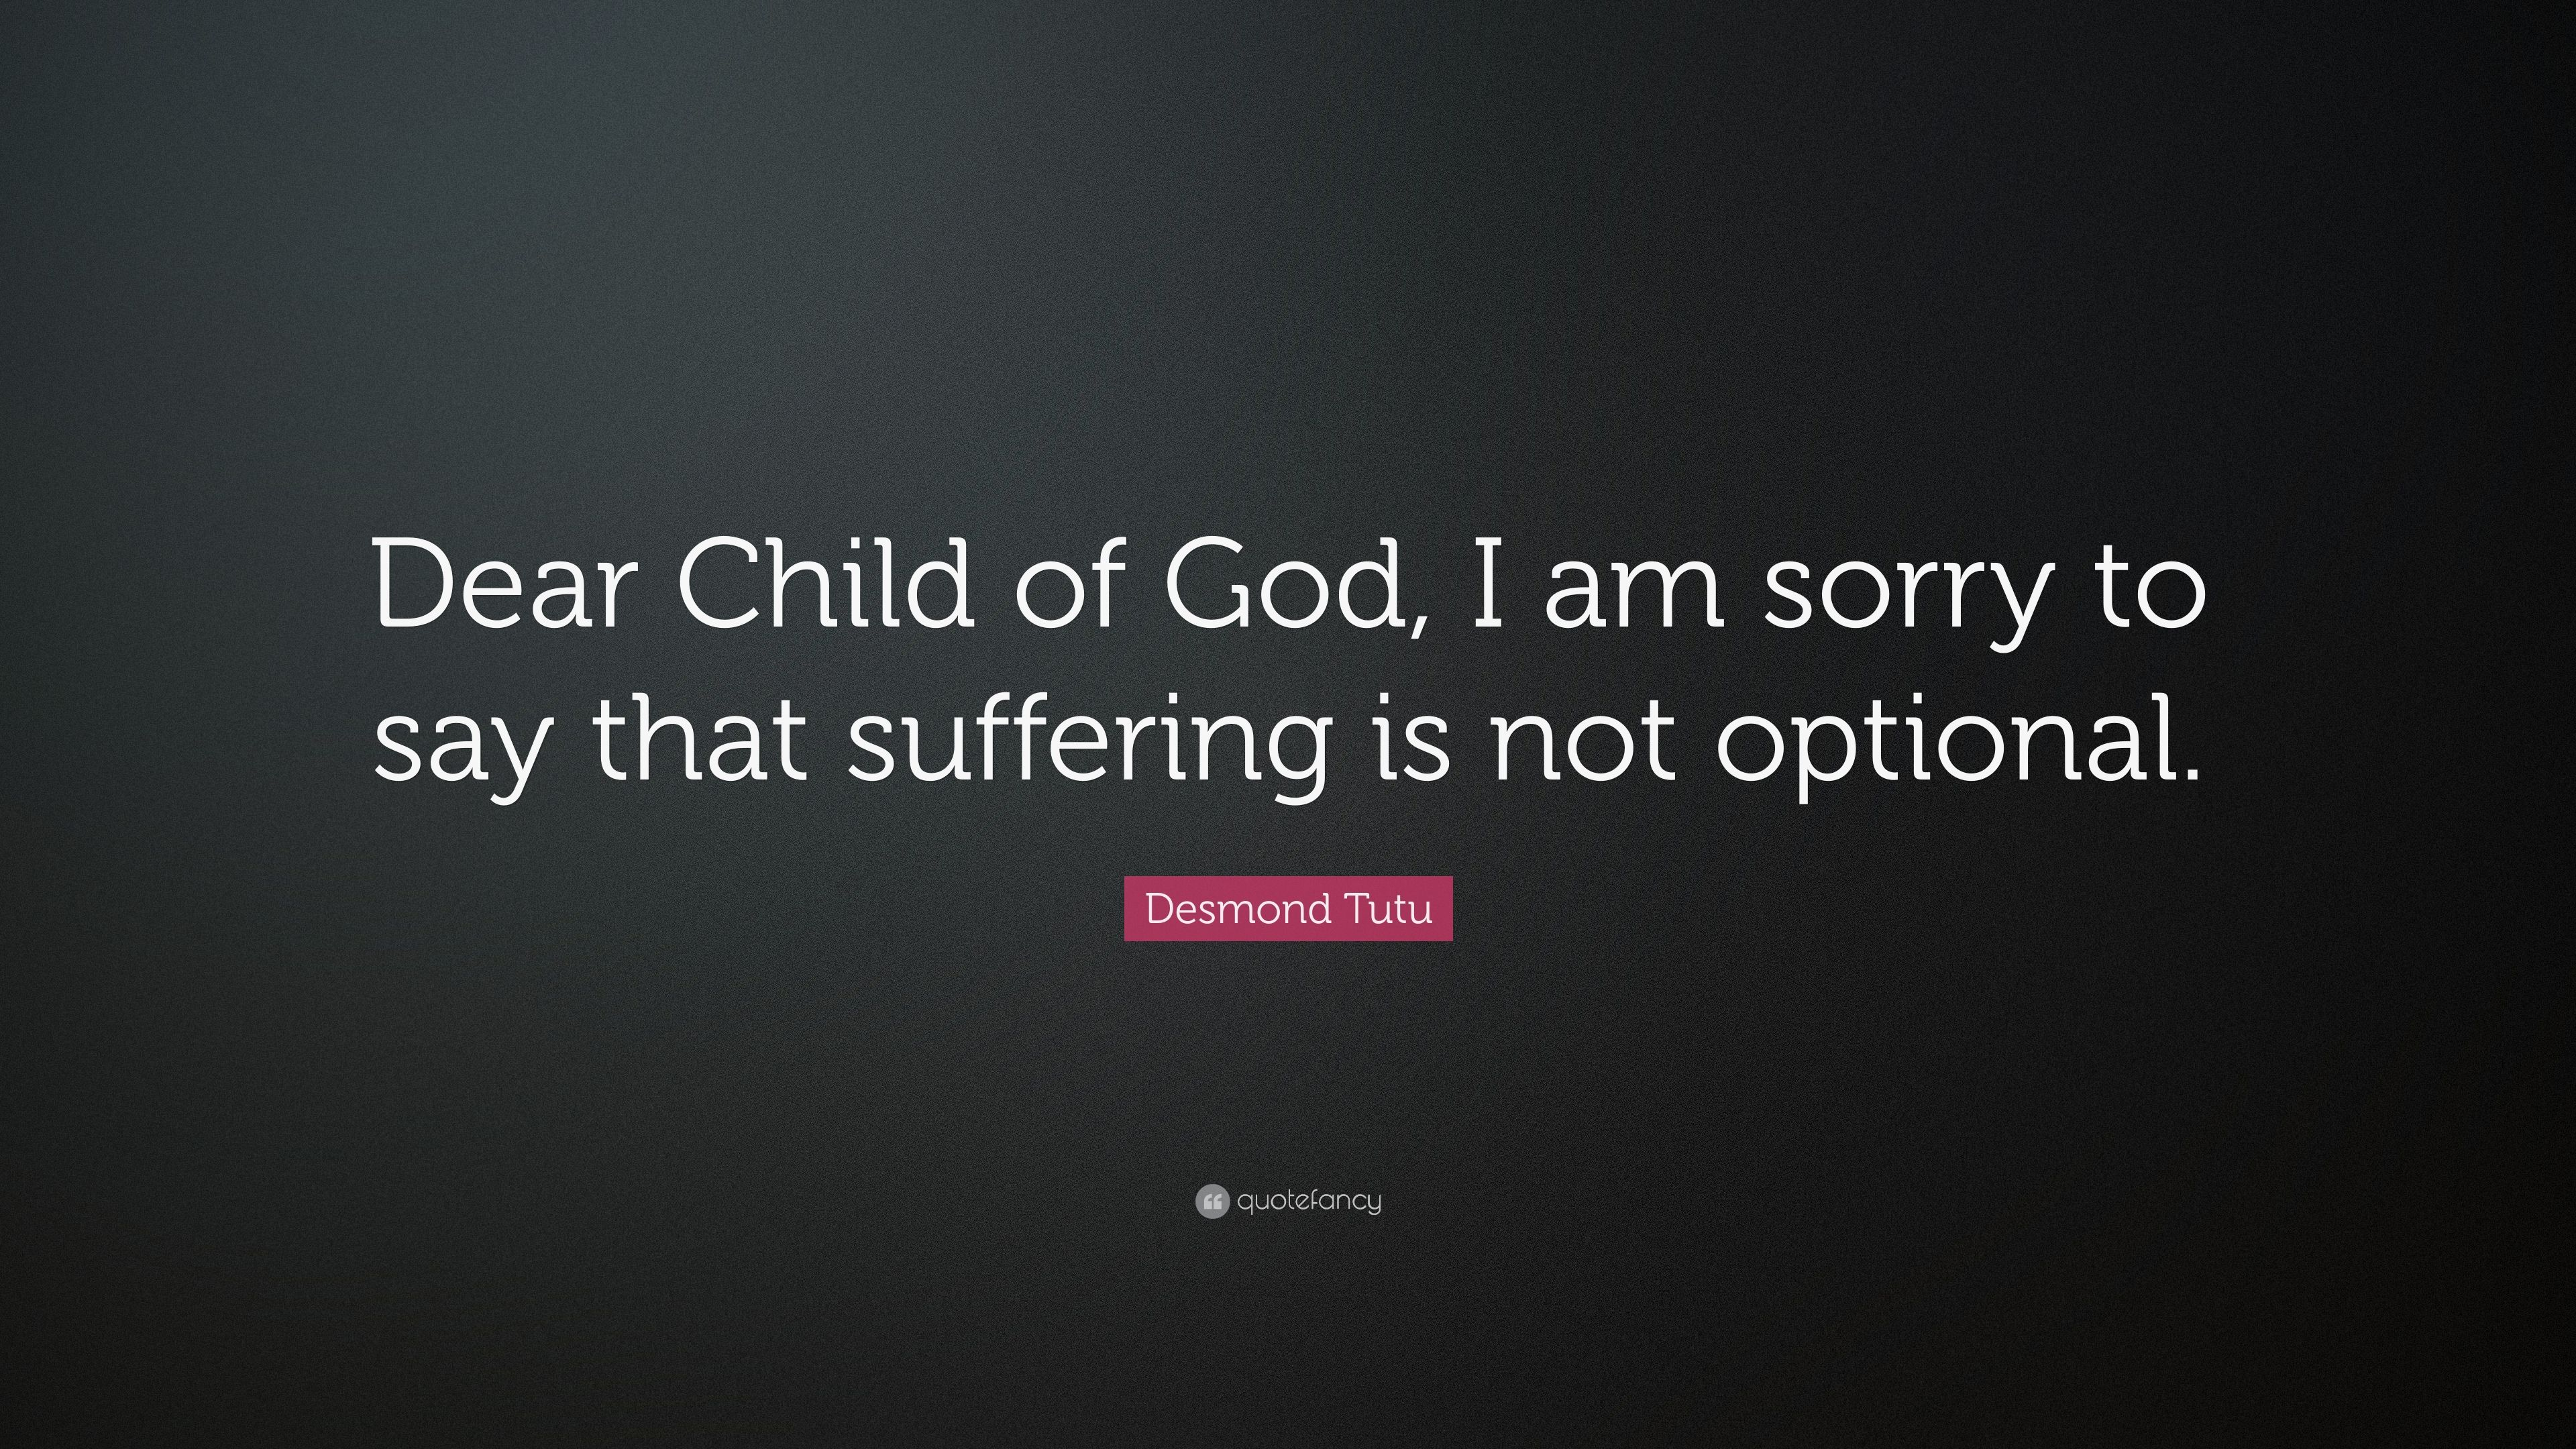 desmond tutu quote dear child of god i am sorry to say that